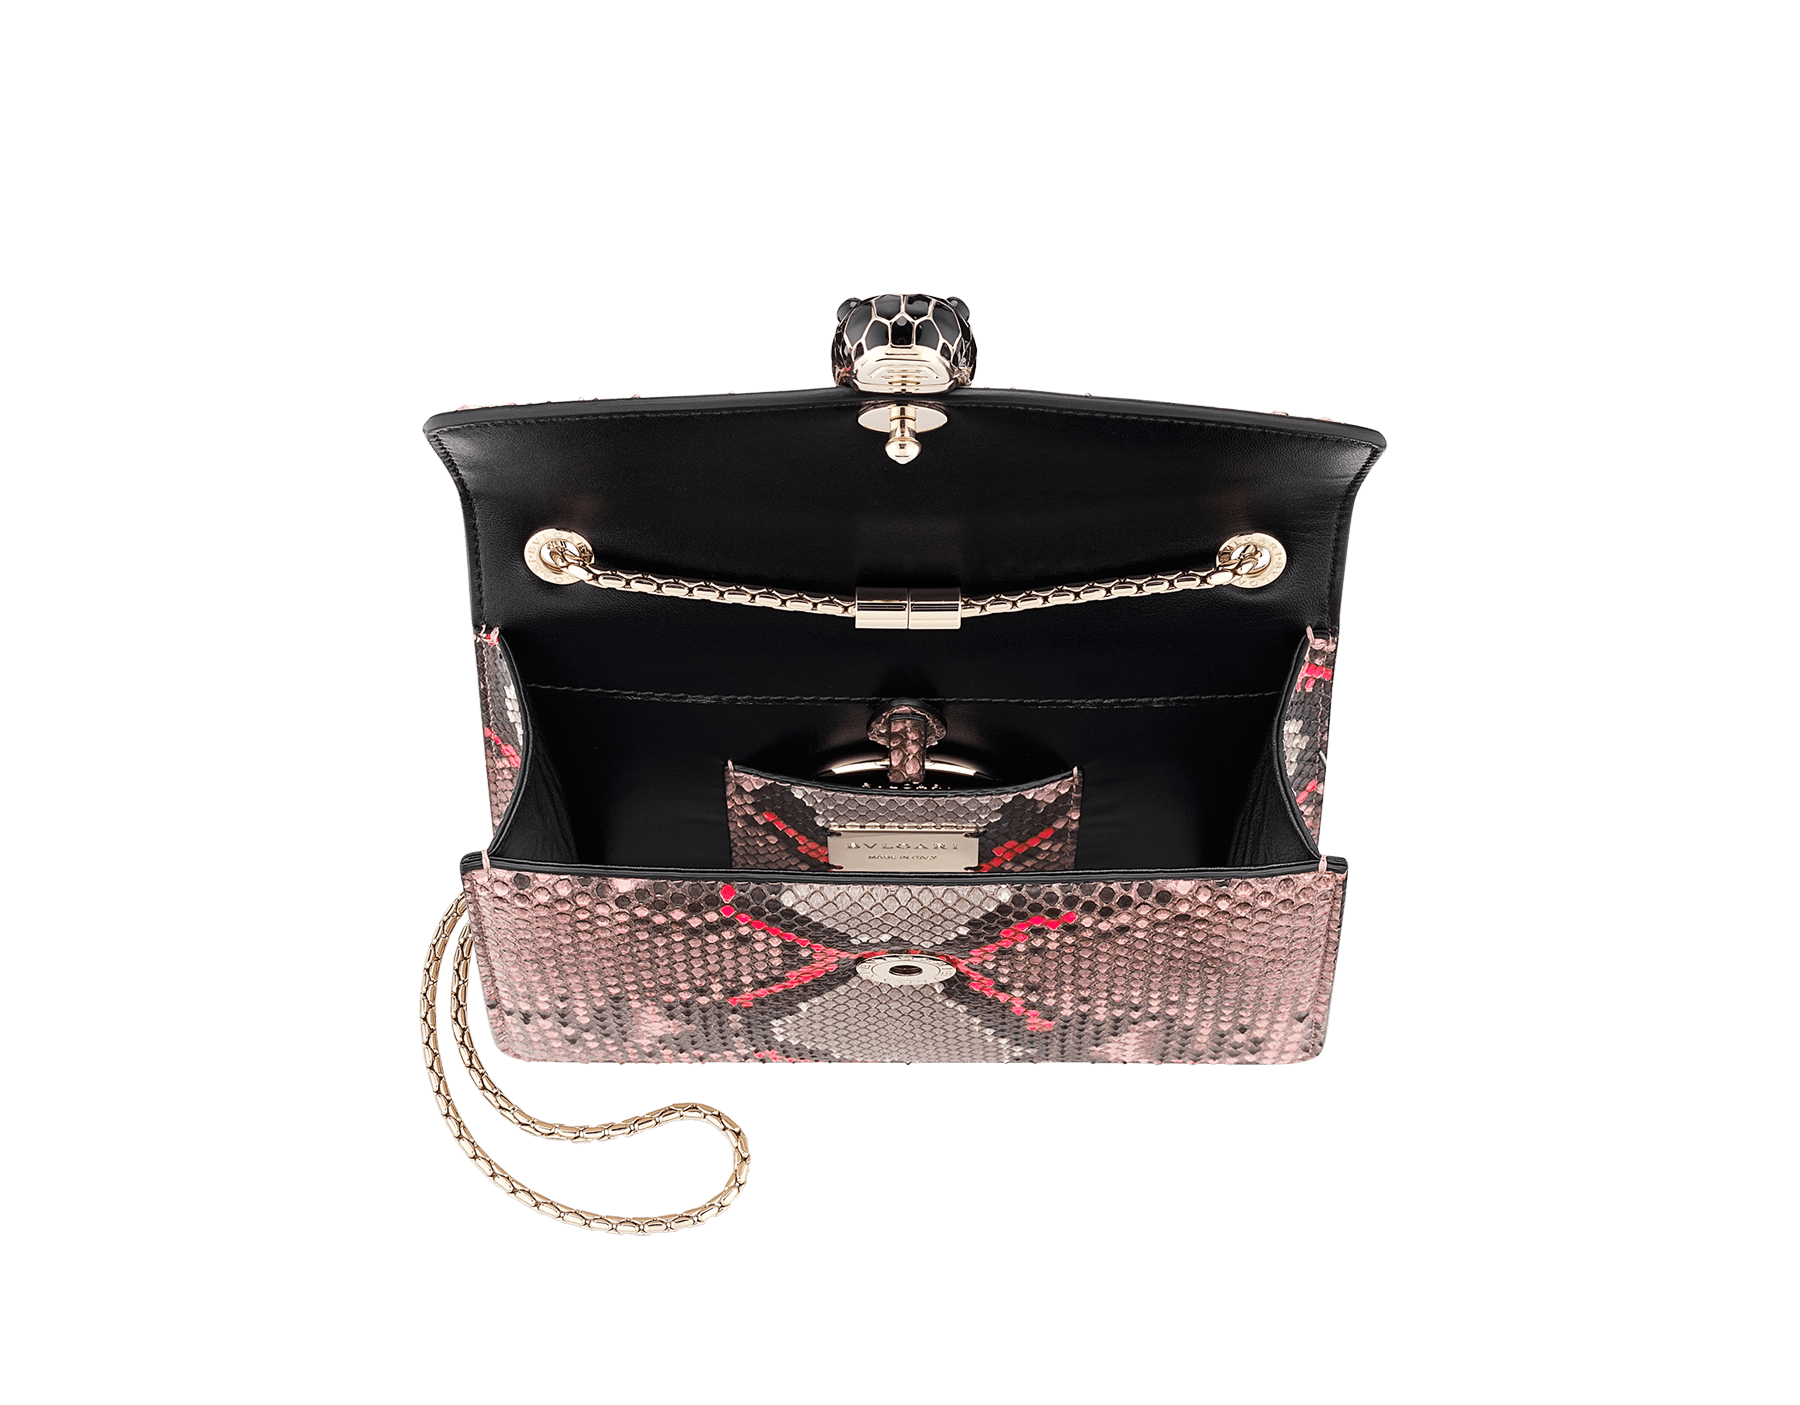 """Serpenti Forever"" crossbody bag in silky coral and flash amethyst Neon python skin. Iconic snake head closure in light gold plated brass enriched with black and flash amethyst enamel and black onyx eyes. 288953 image 5"